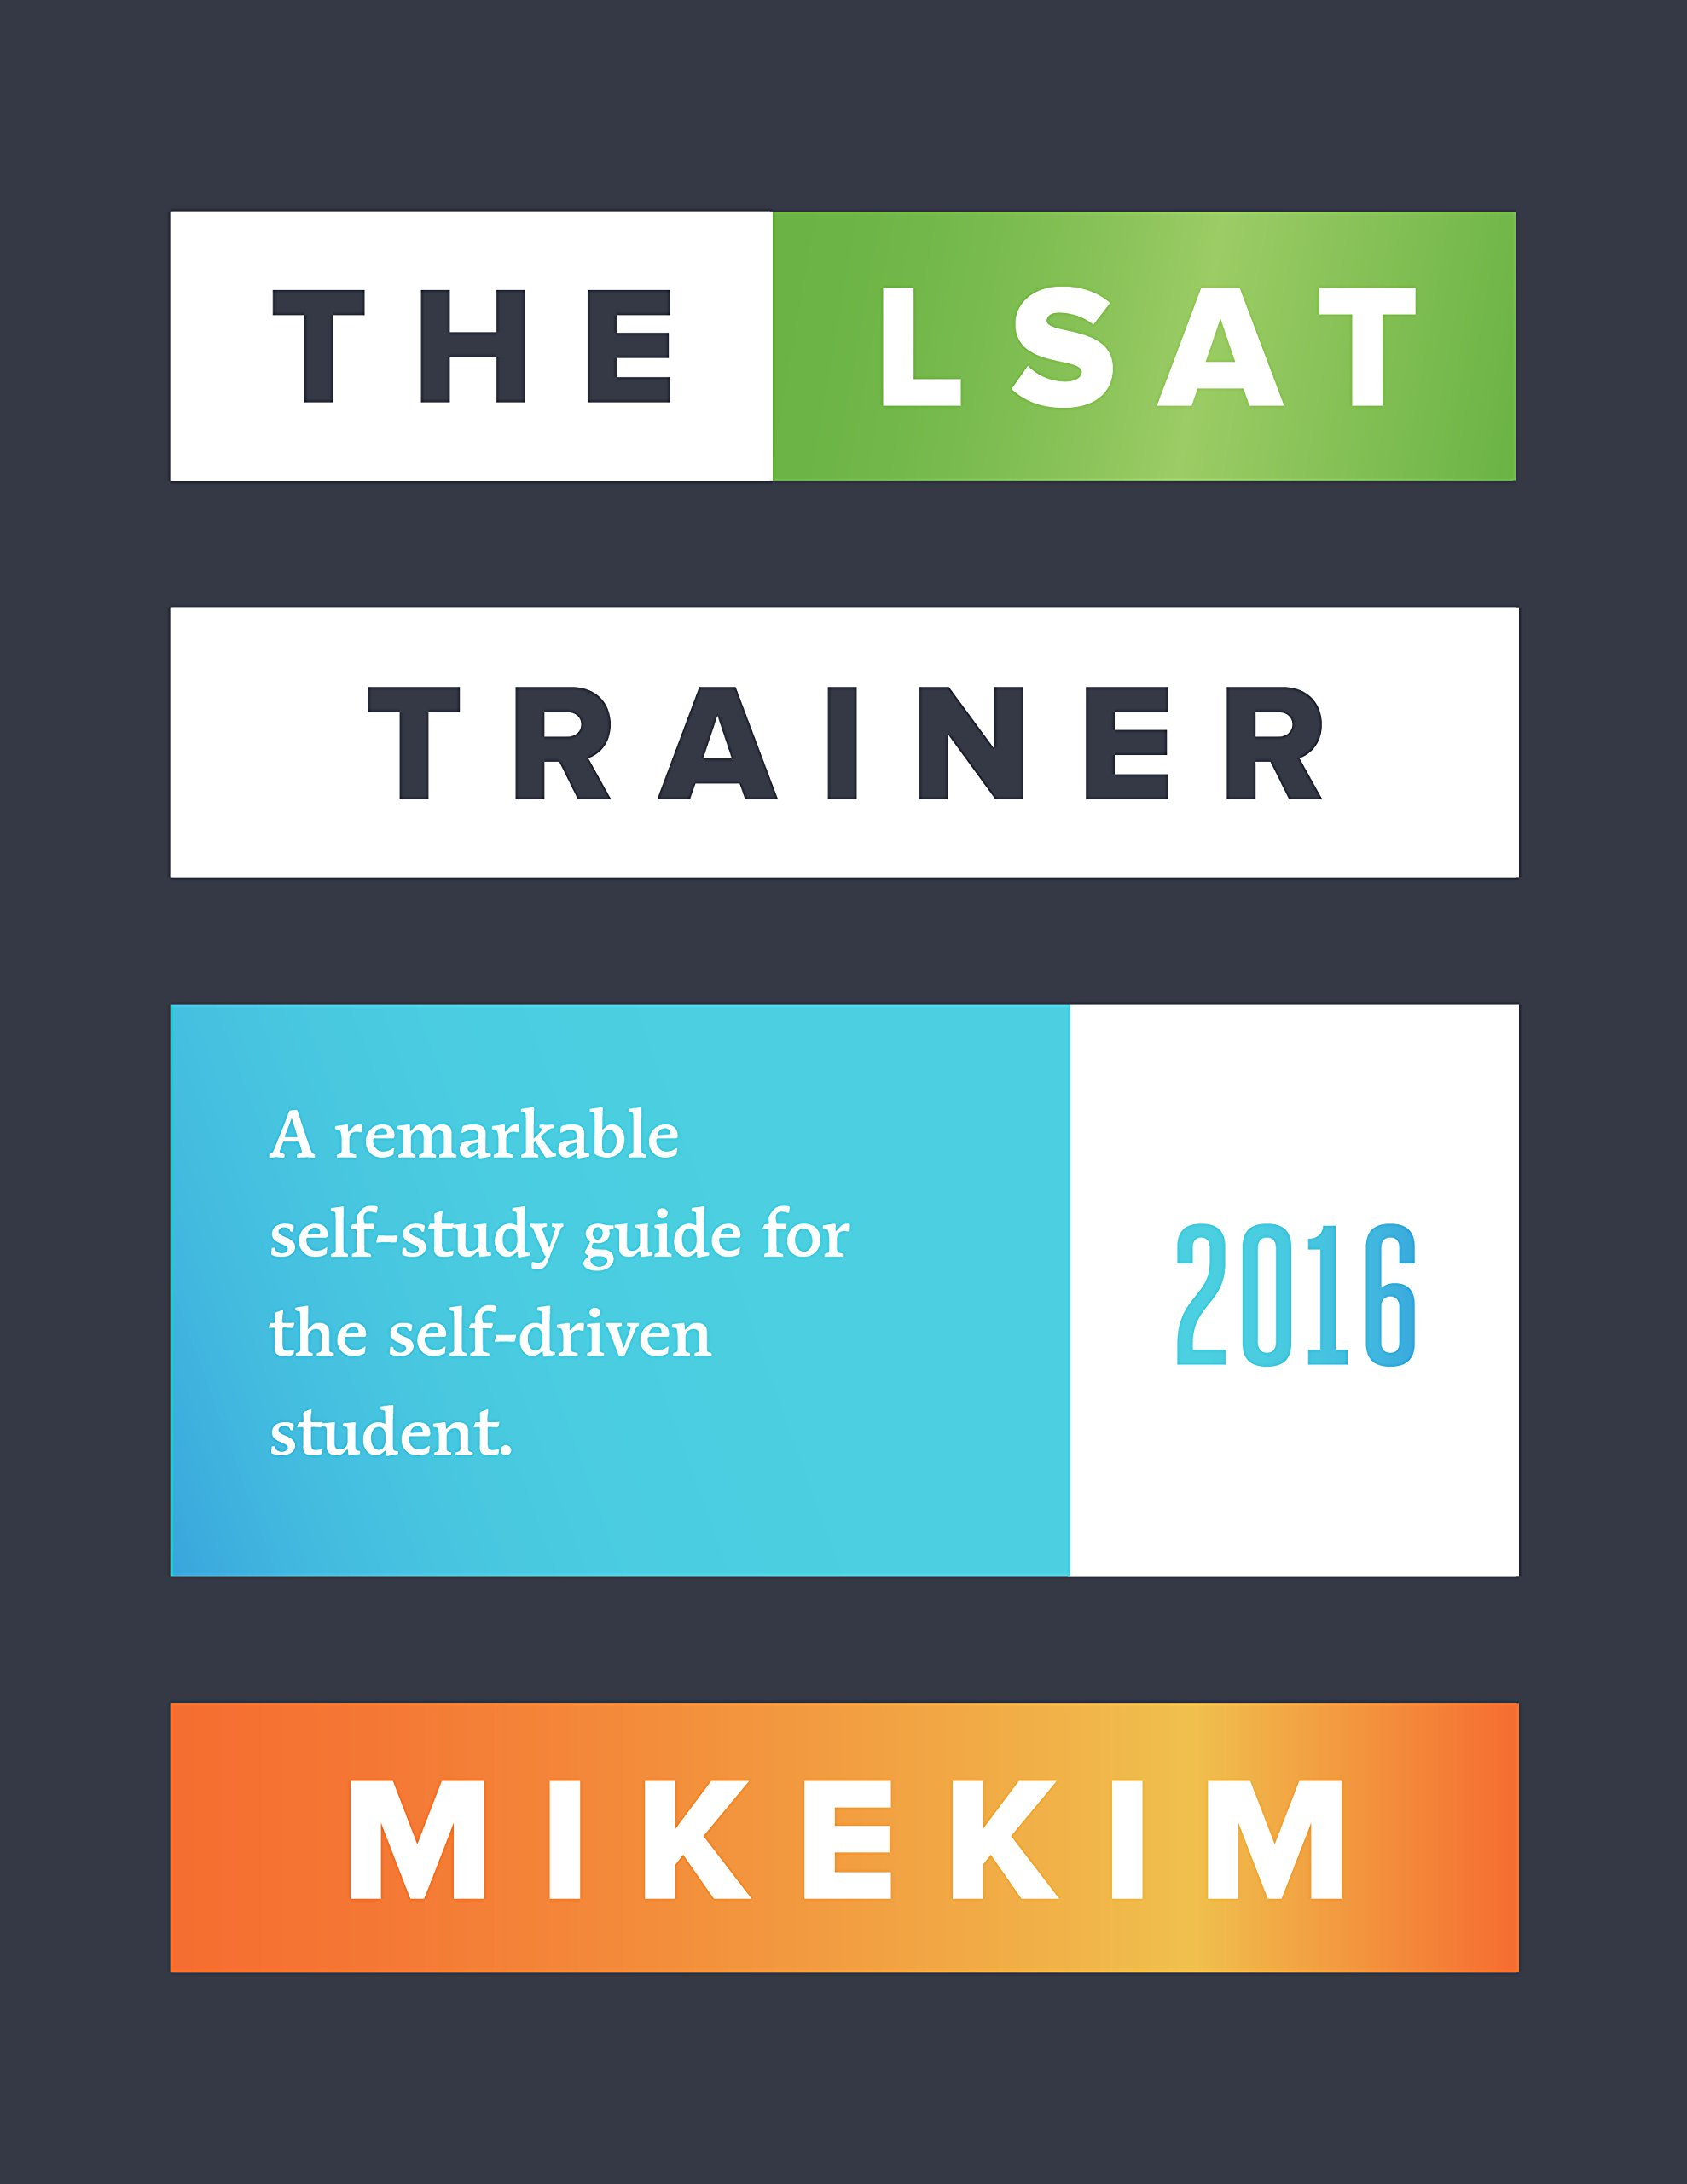 THE OFFICIAL LSAT PREPTEST - lsac.org